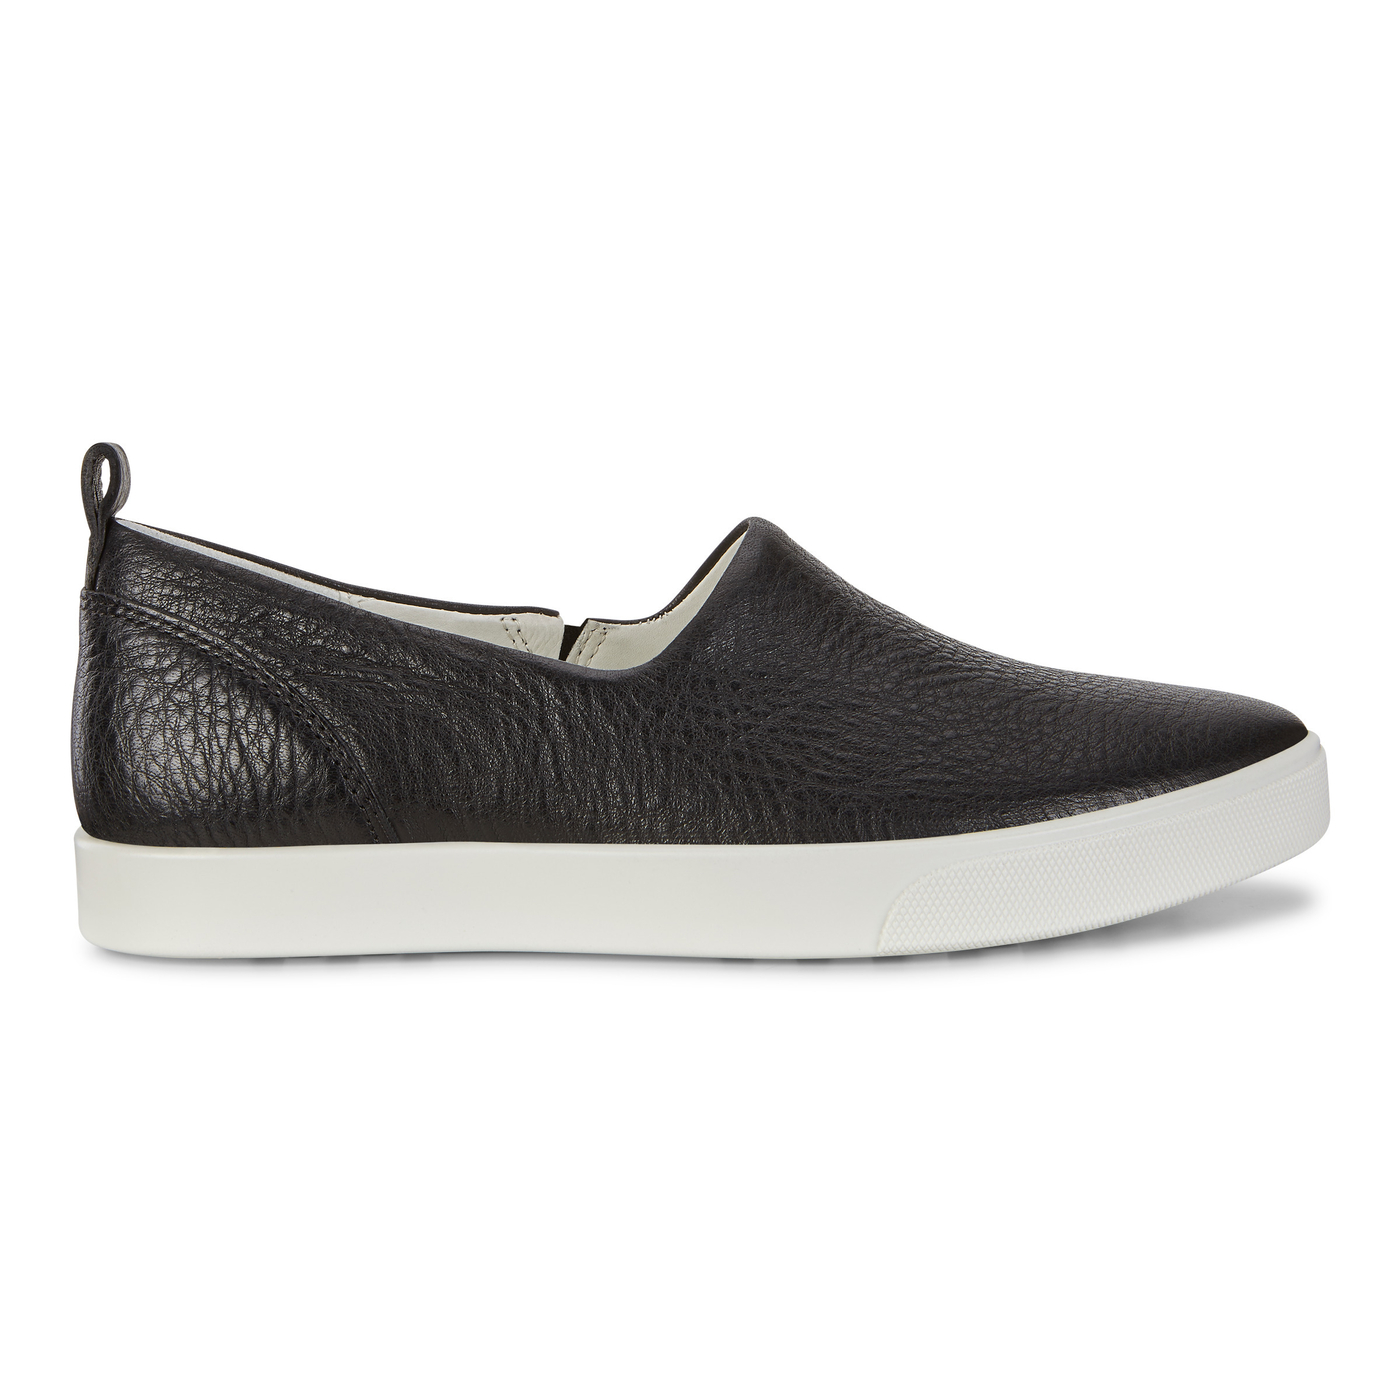 ECCO GILLIAN Slip On